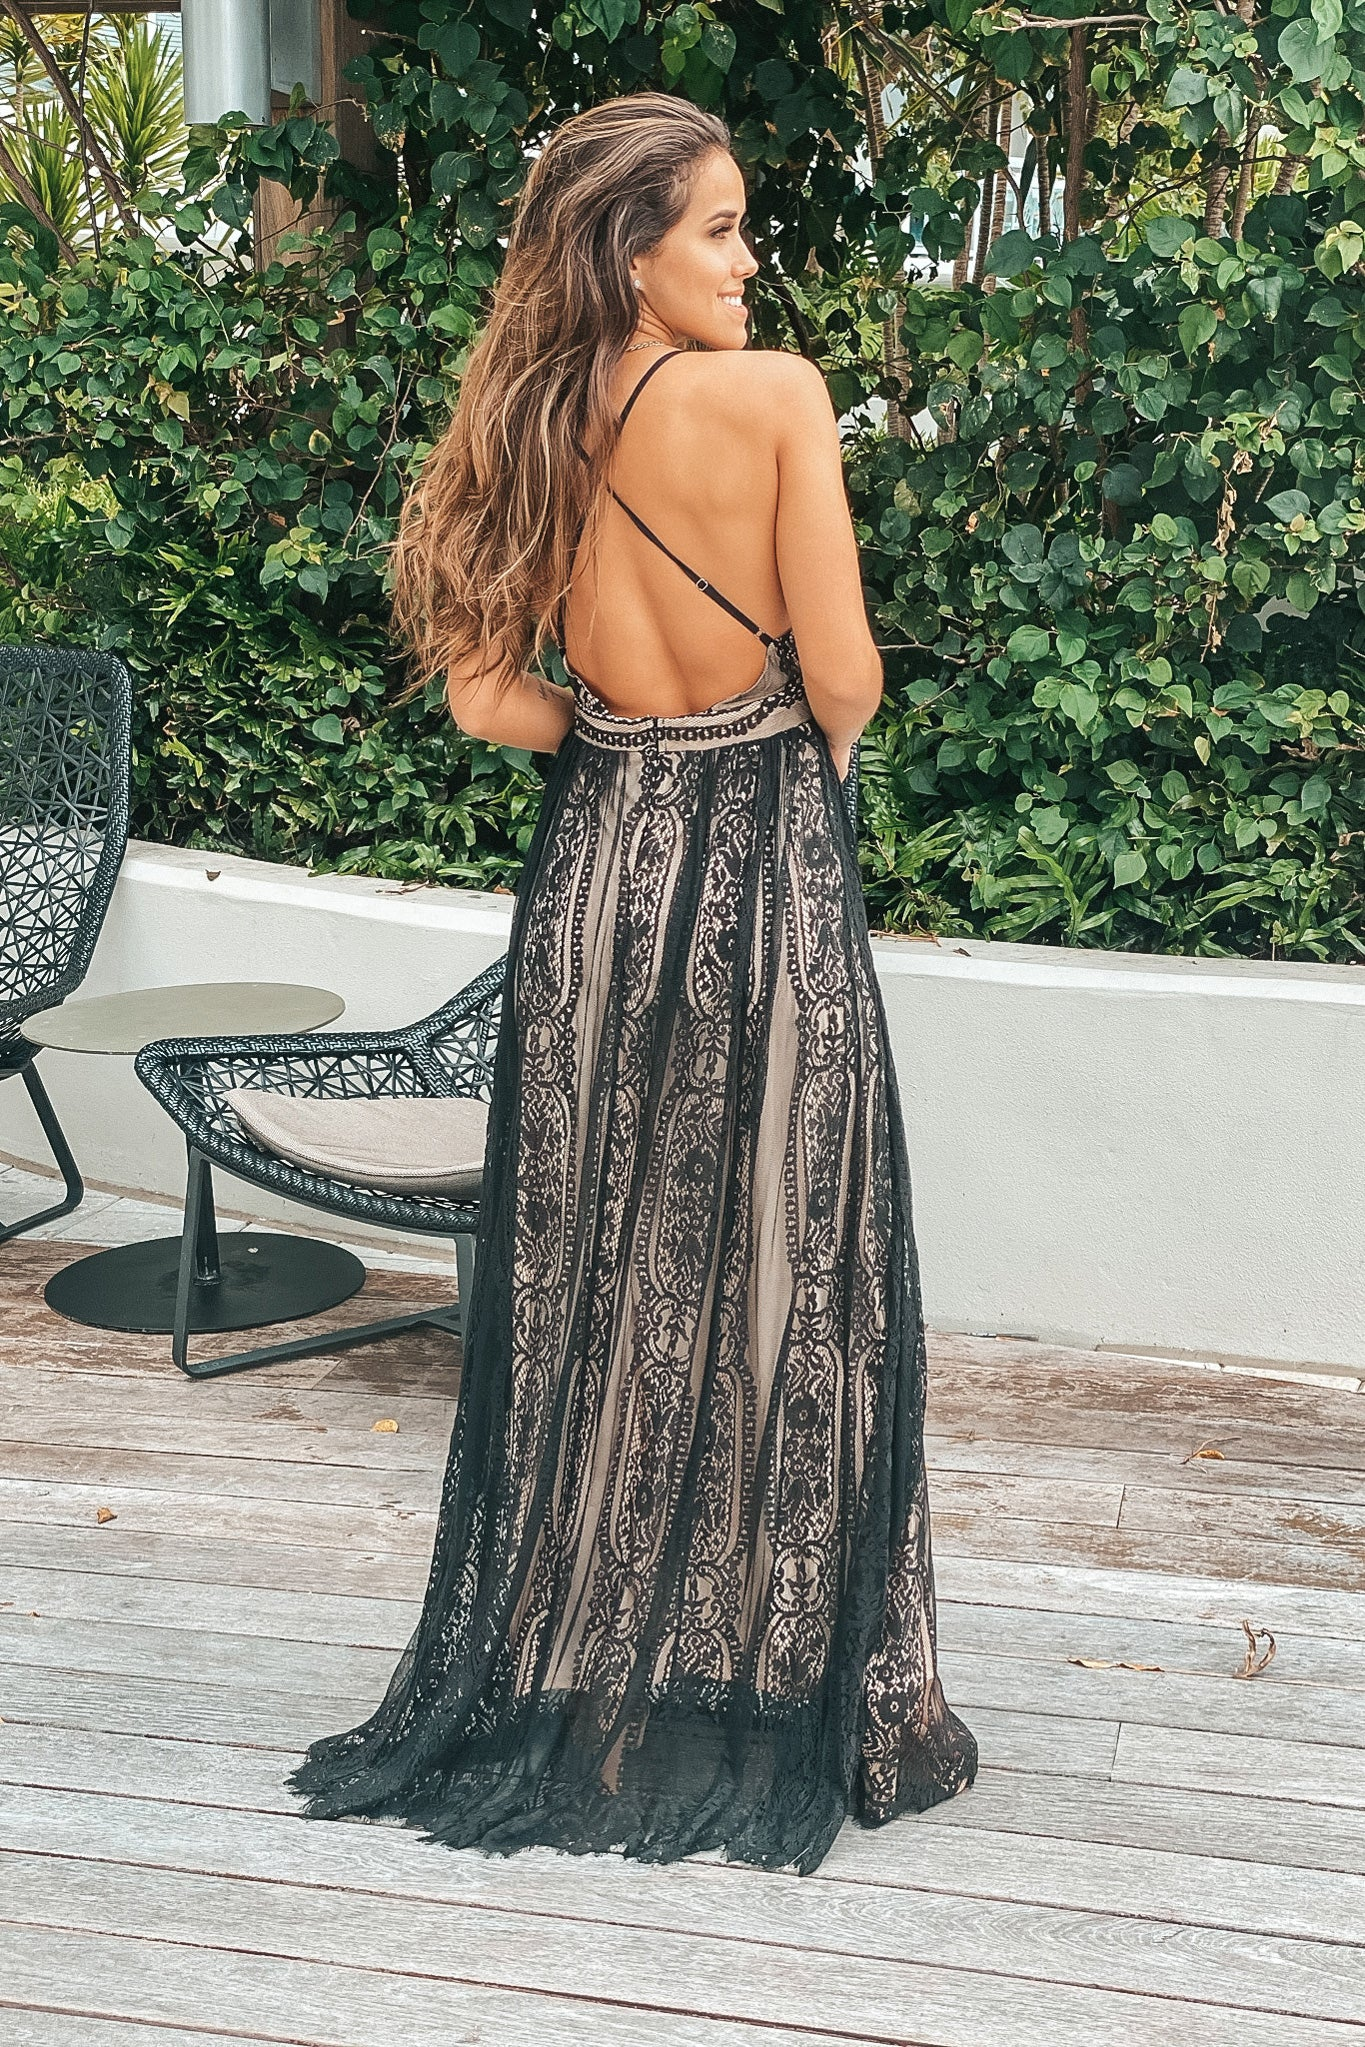 beige and white open back maxi